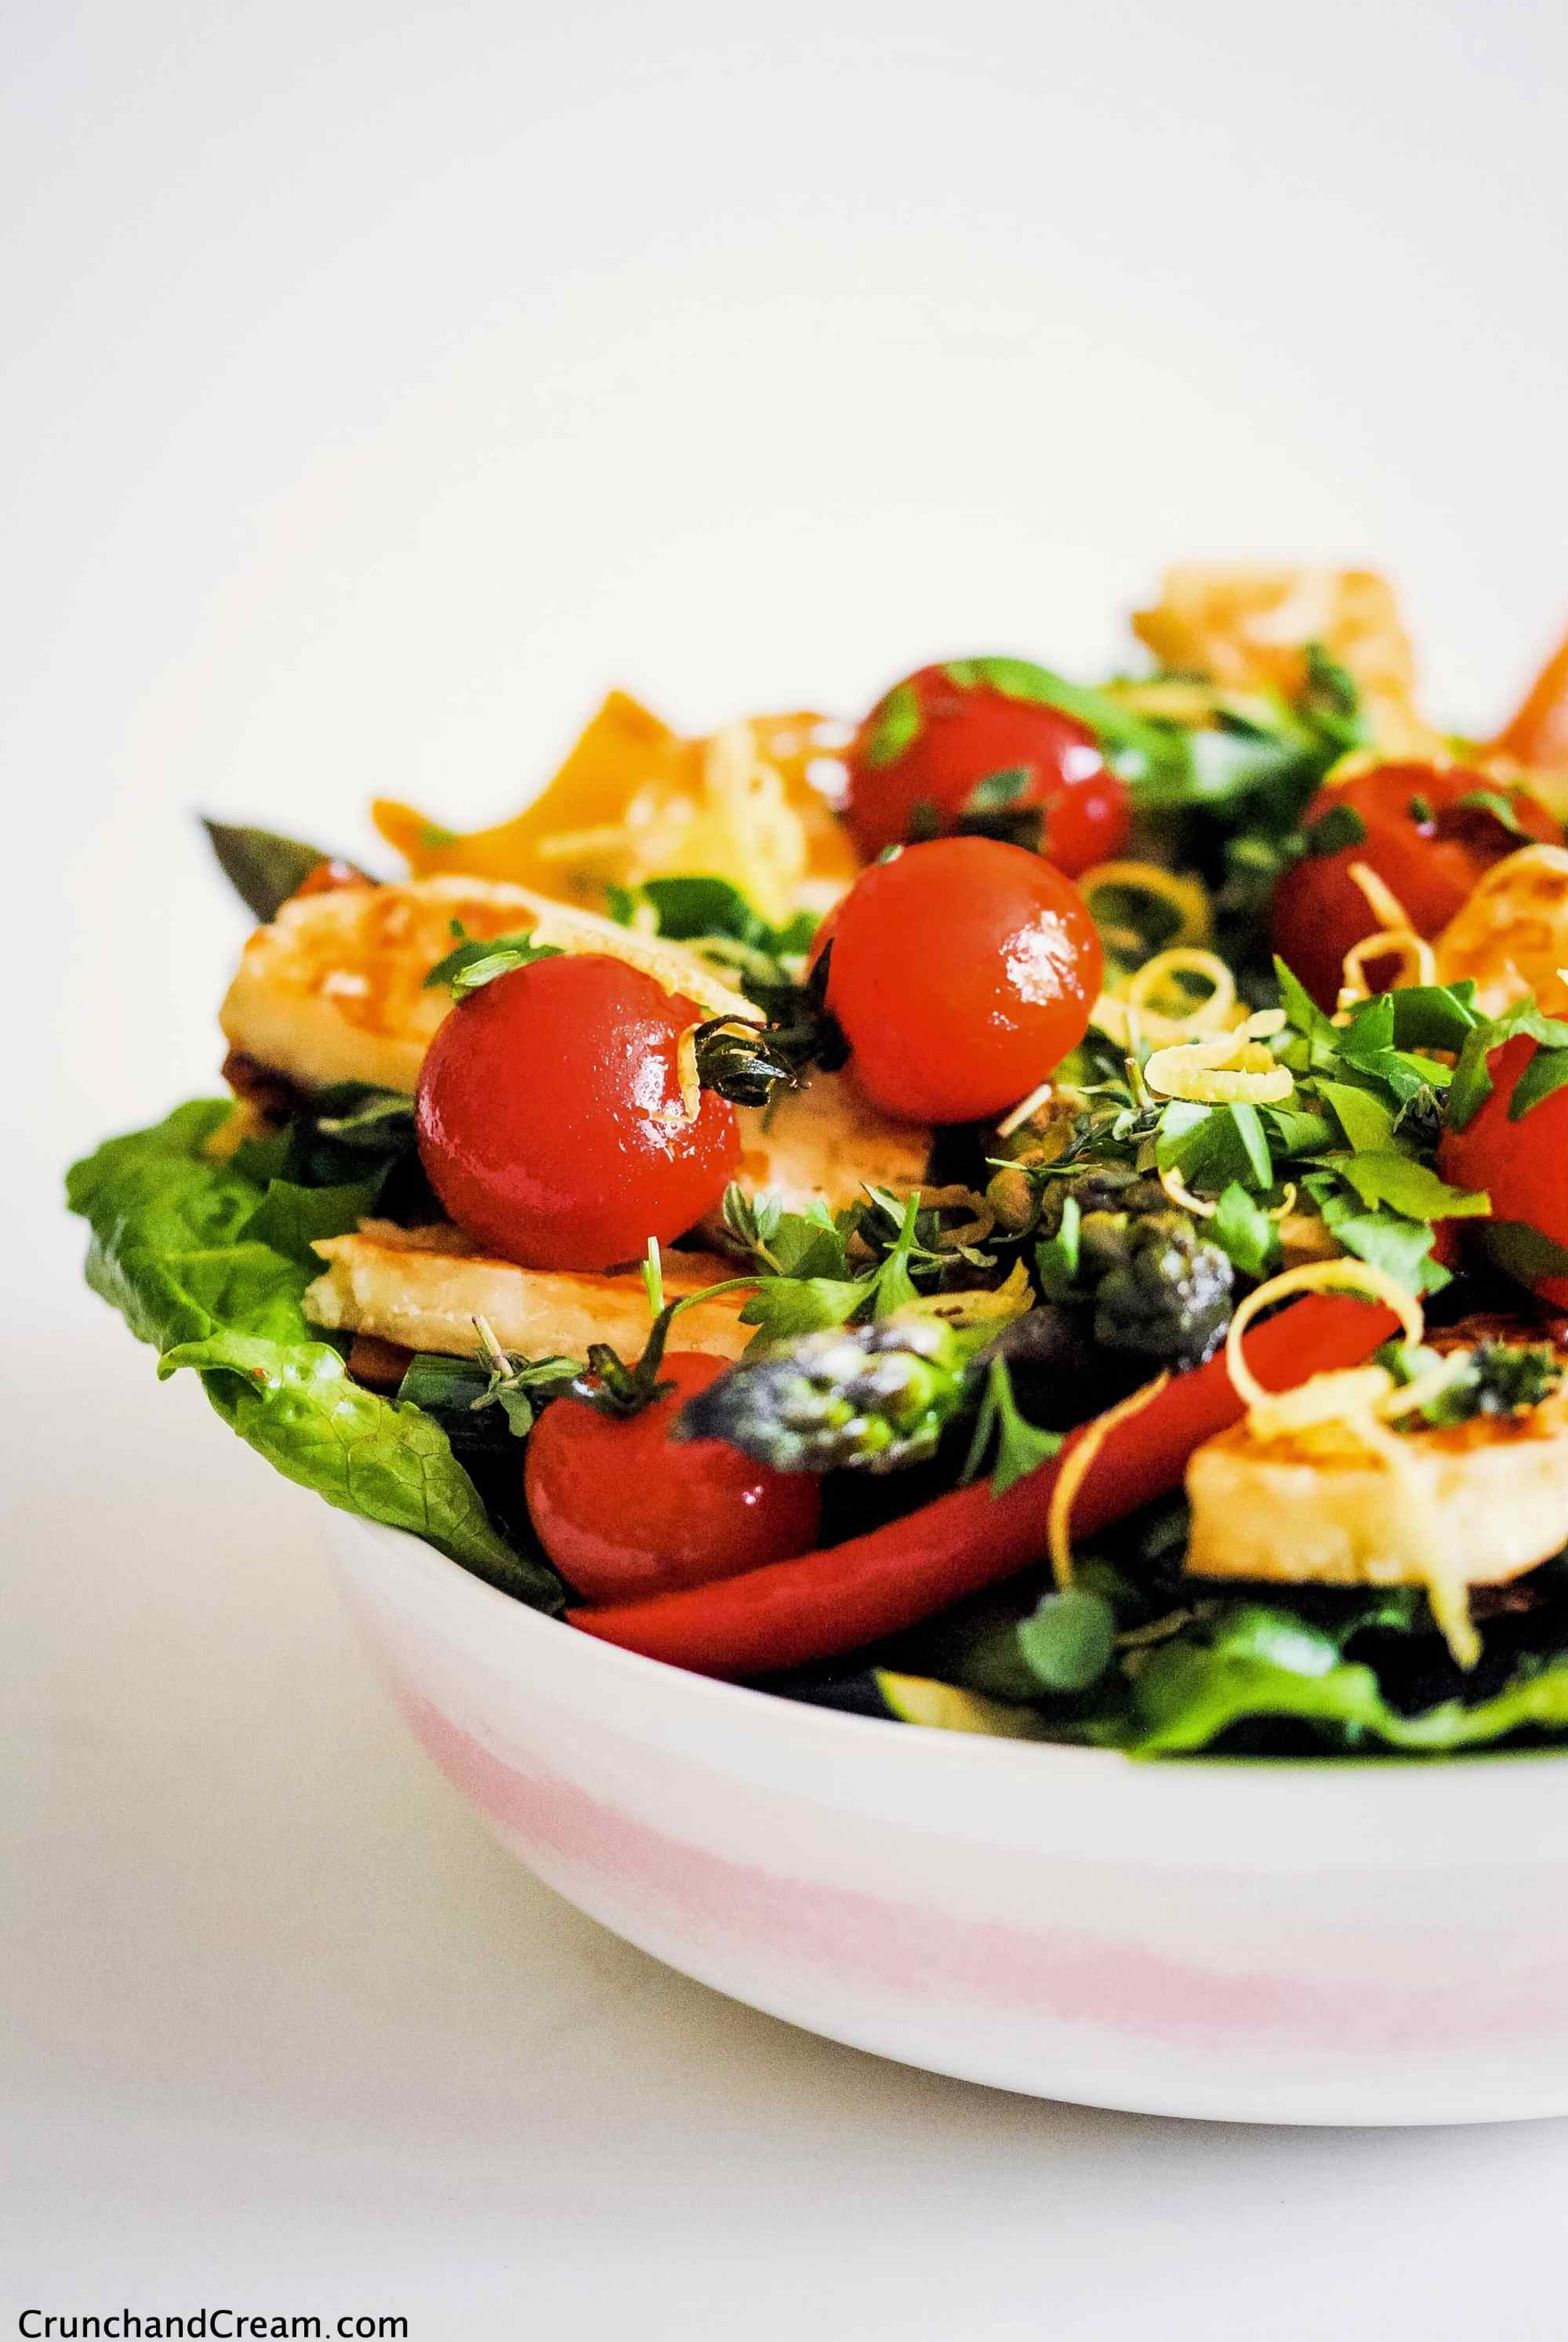 Simple salad recipes lunch & dinners